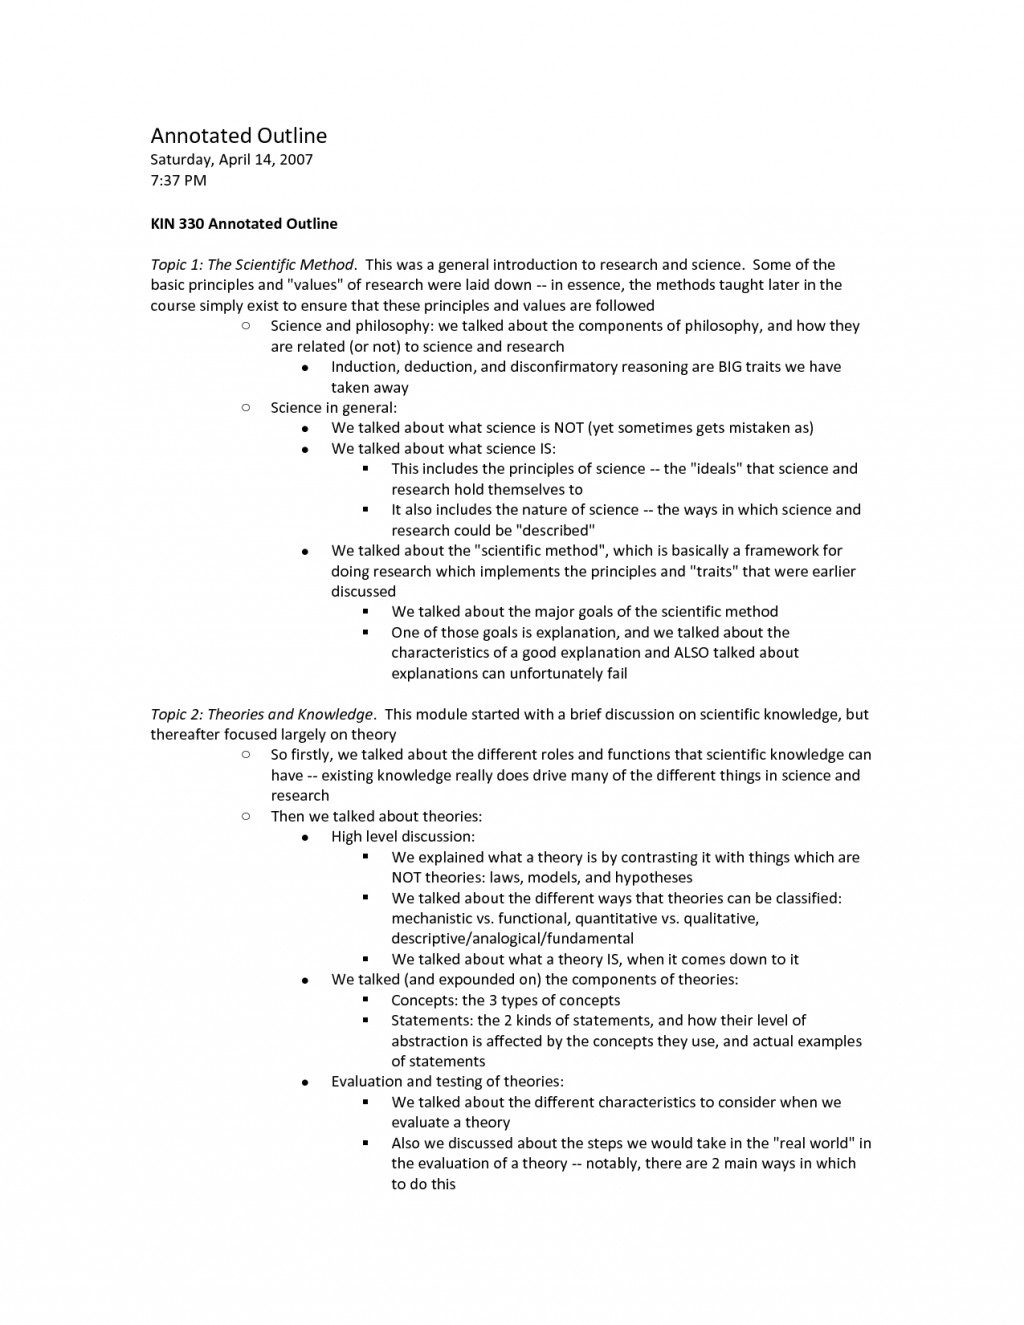 010 Sample Of An Apa Style Research Paper Annotated Outline For 308696 Wonderful A Apa-style Template Example Large